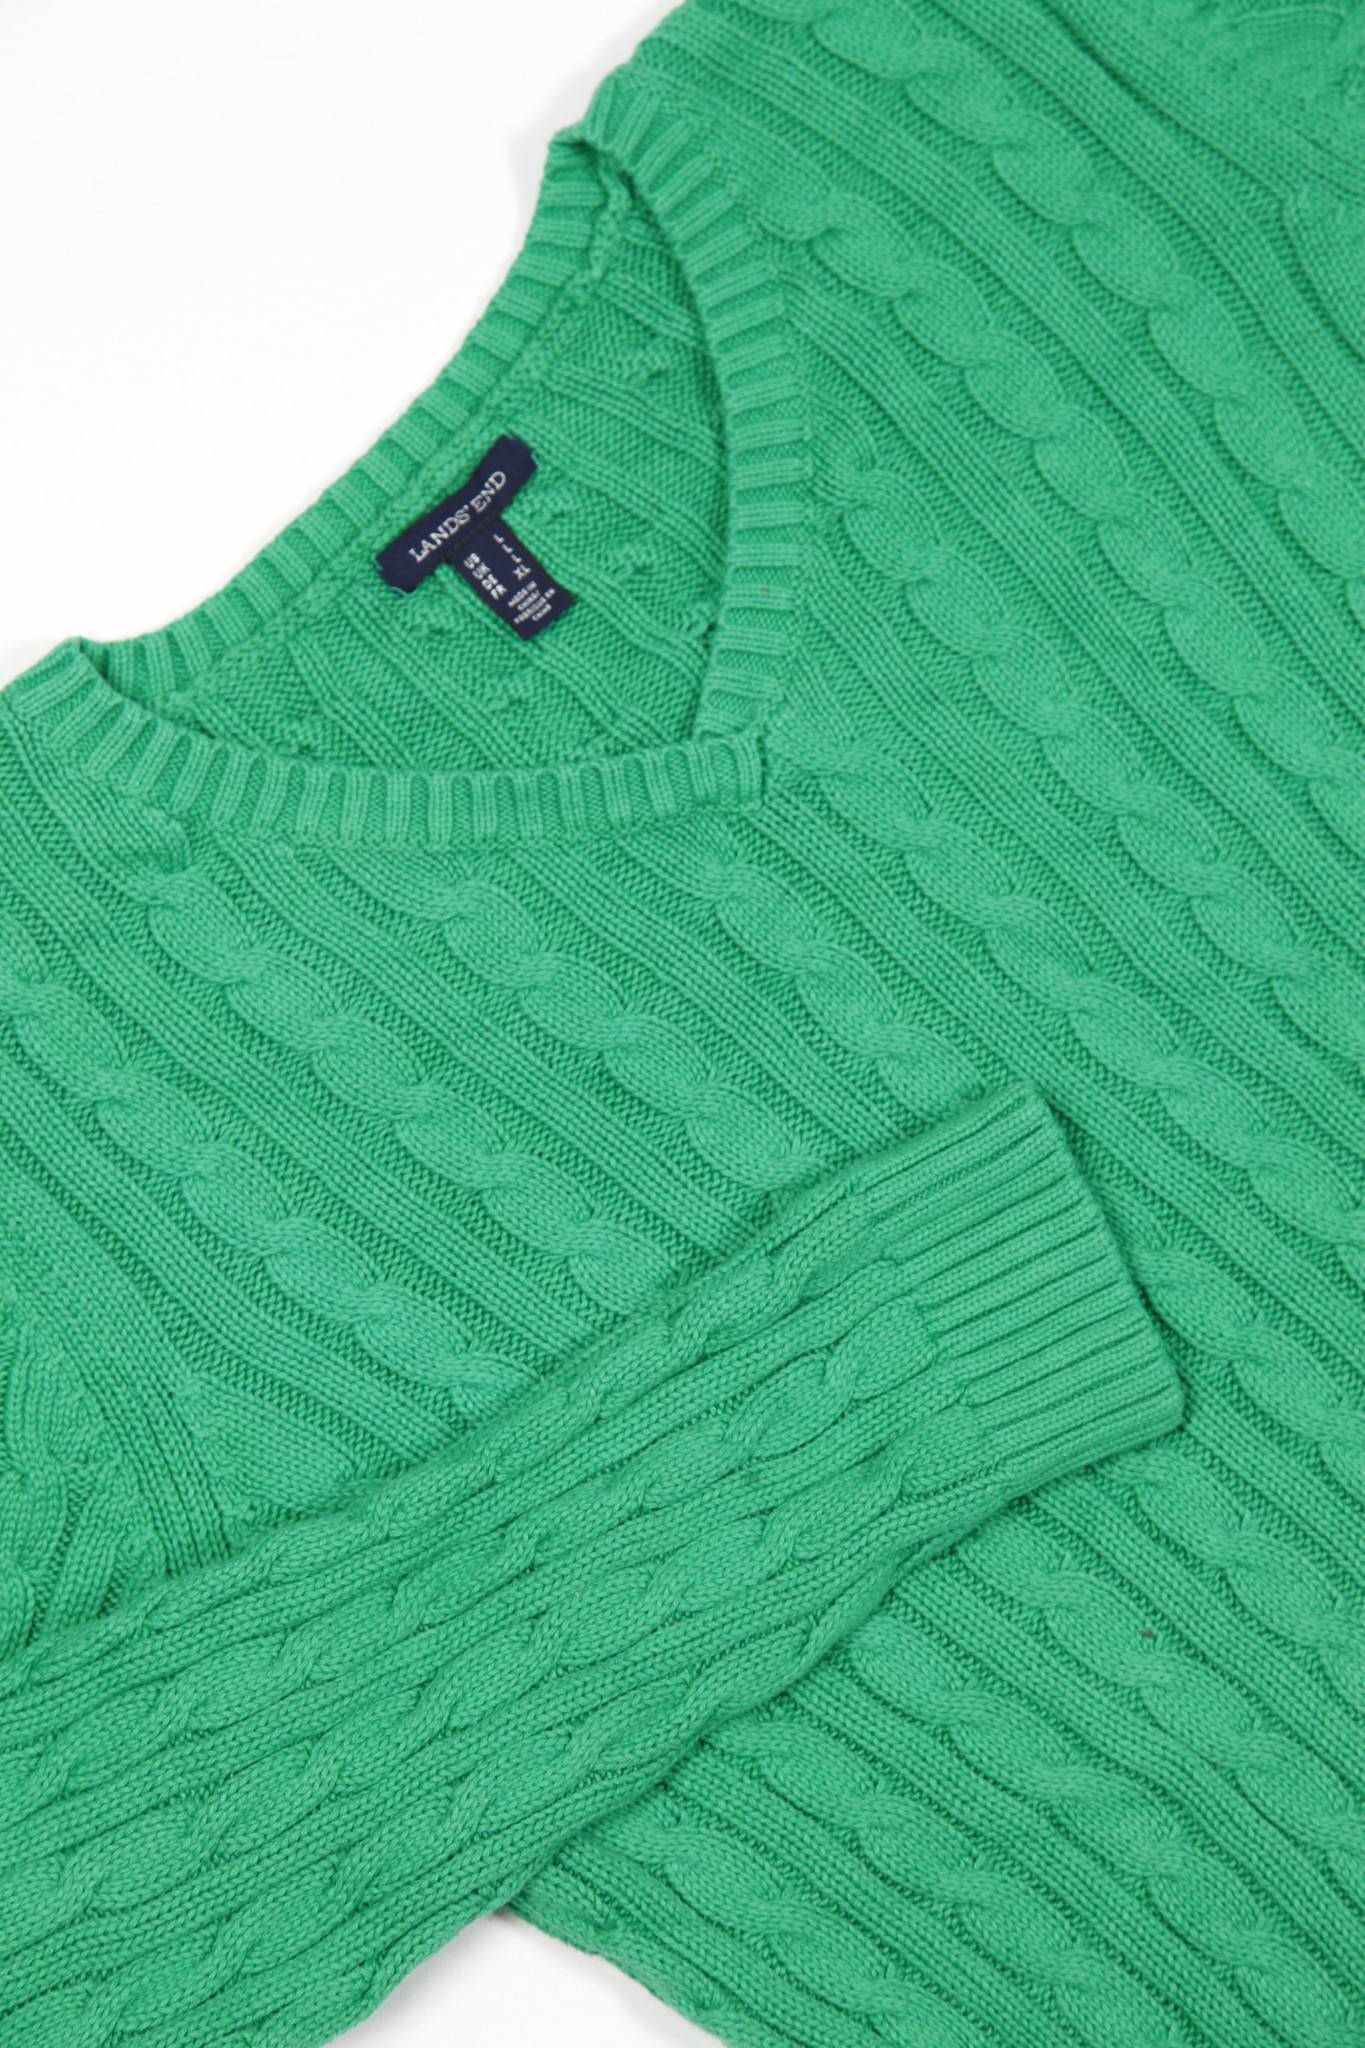 Classic green cable knit jumper